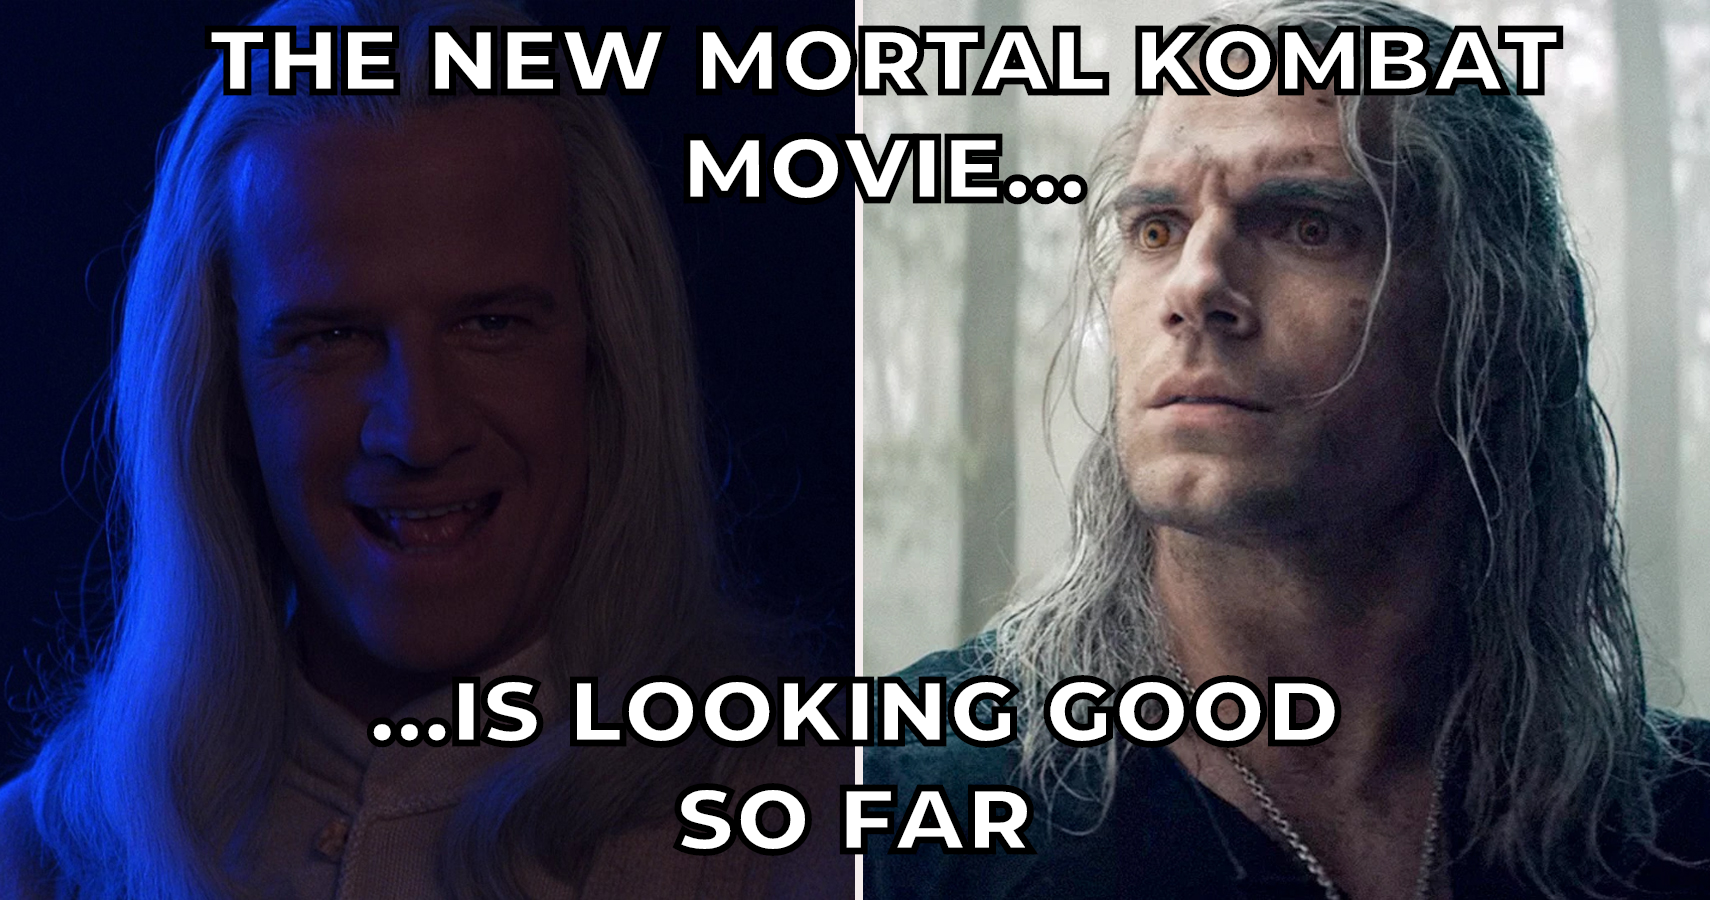 10 Hilarious Mortal Kombat Movie Memes To Get You Excited ...